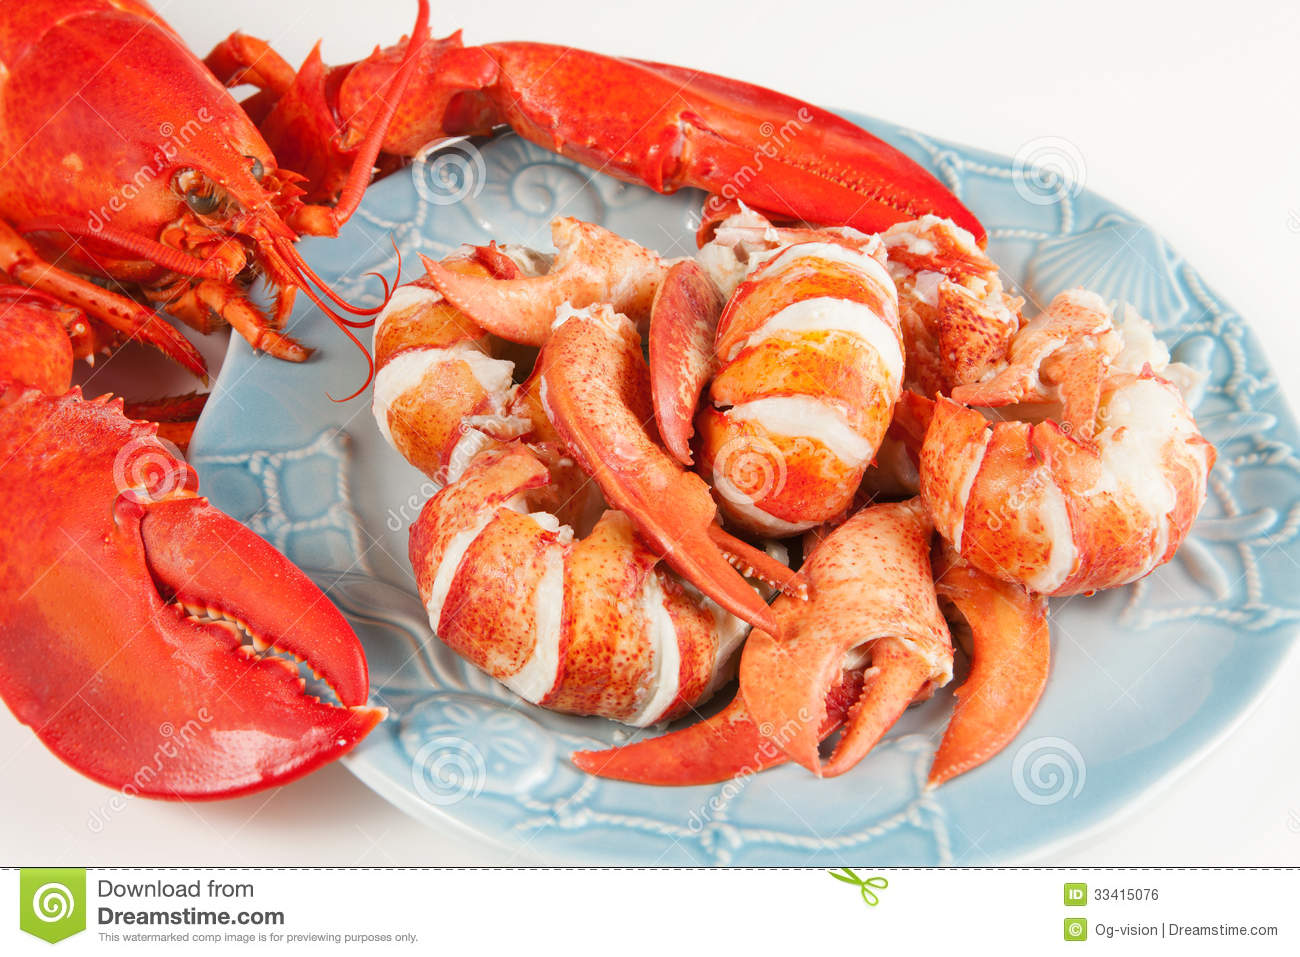 Lobster meat stock photo. Image of cooked, plate, white - 33415076